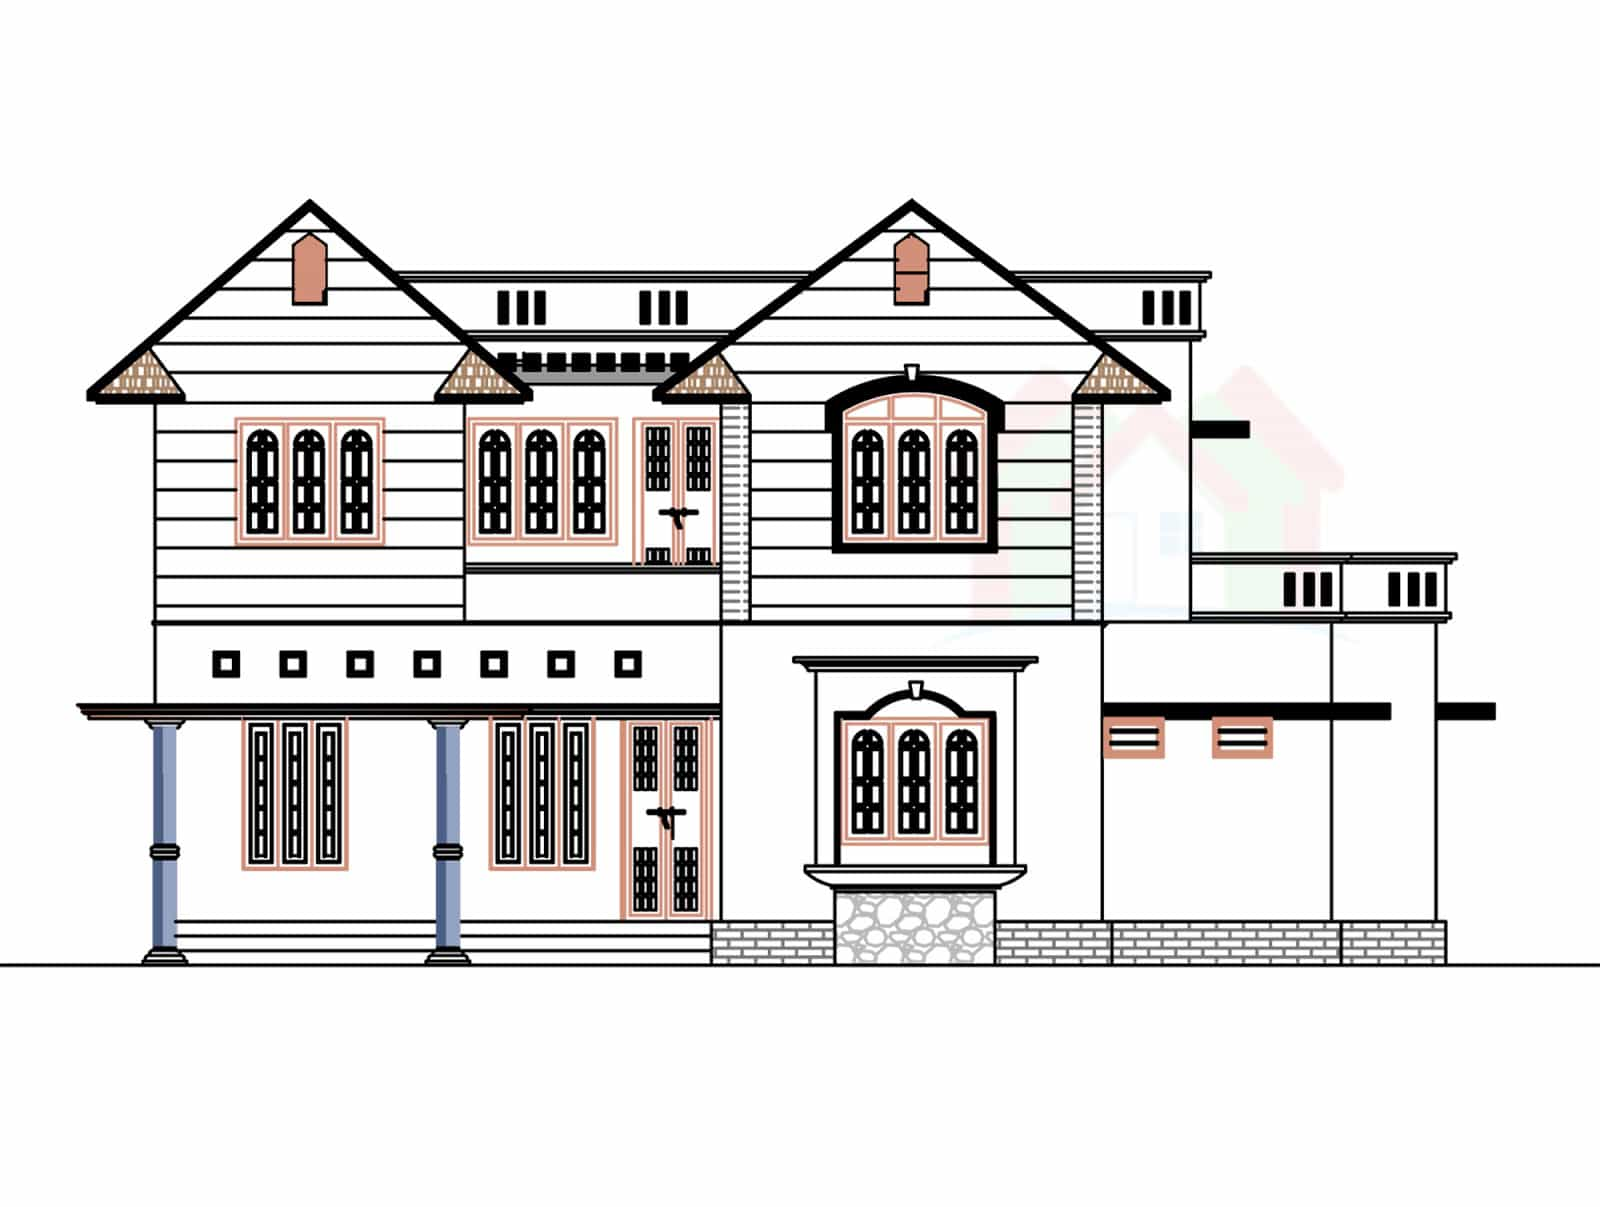 Kerala House Plans   KeralaHousePlanner sq ft house design   Kerala house plans